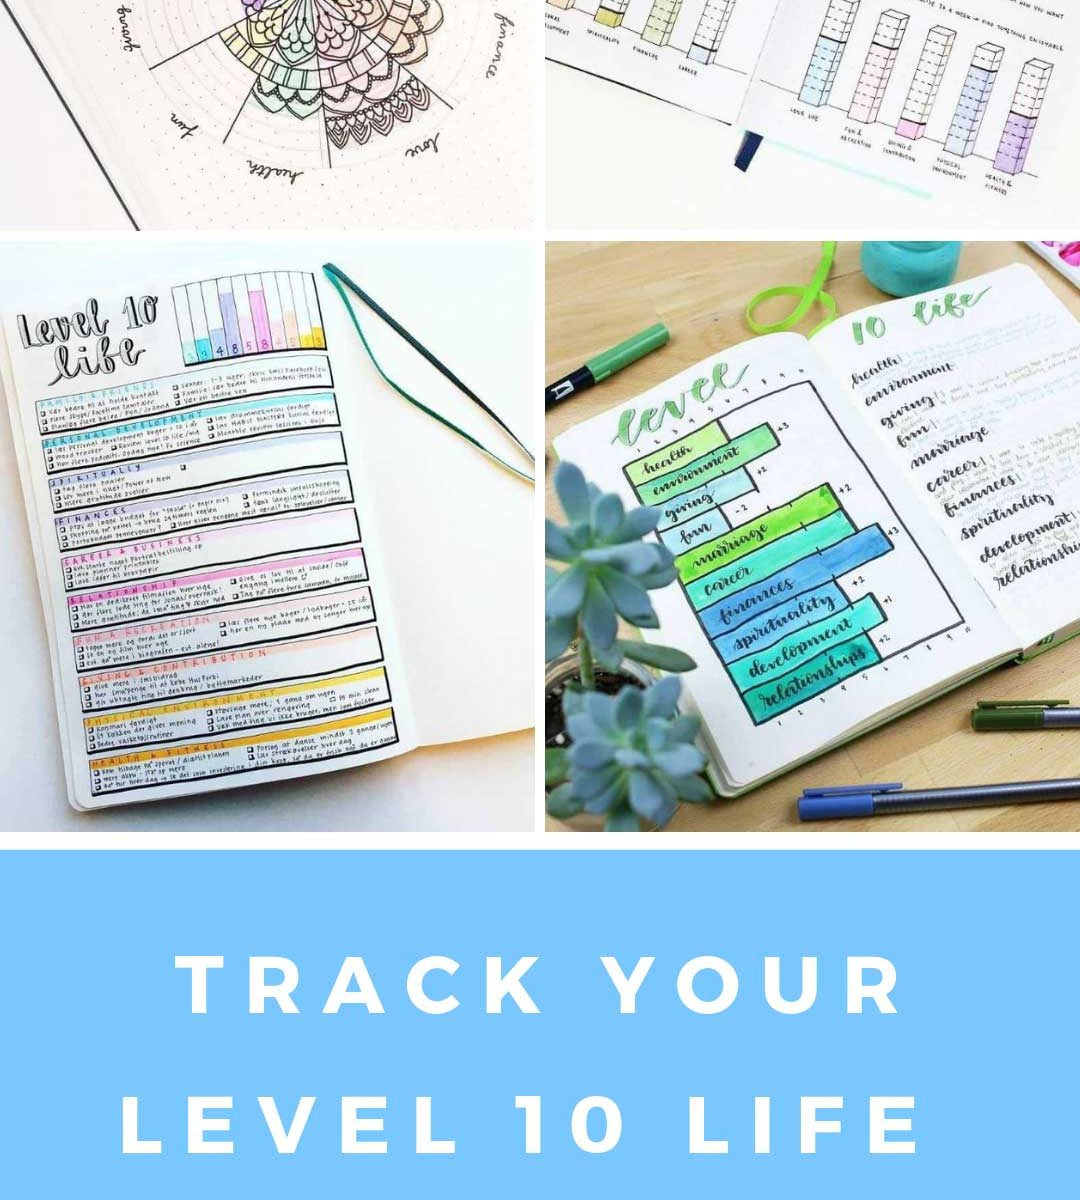 If you're ready to work towards you're level 10 life you totally need one of these bullet journal trackers to help monitor your progress! #bulletjournal #level10life